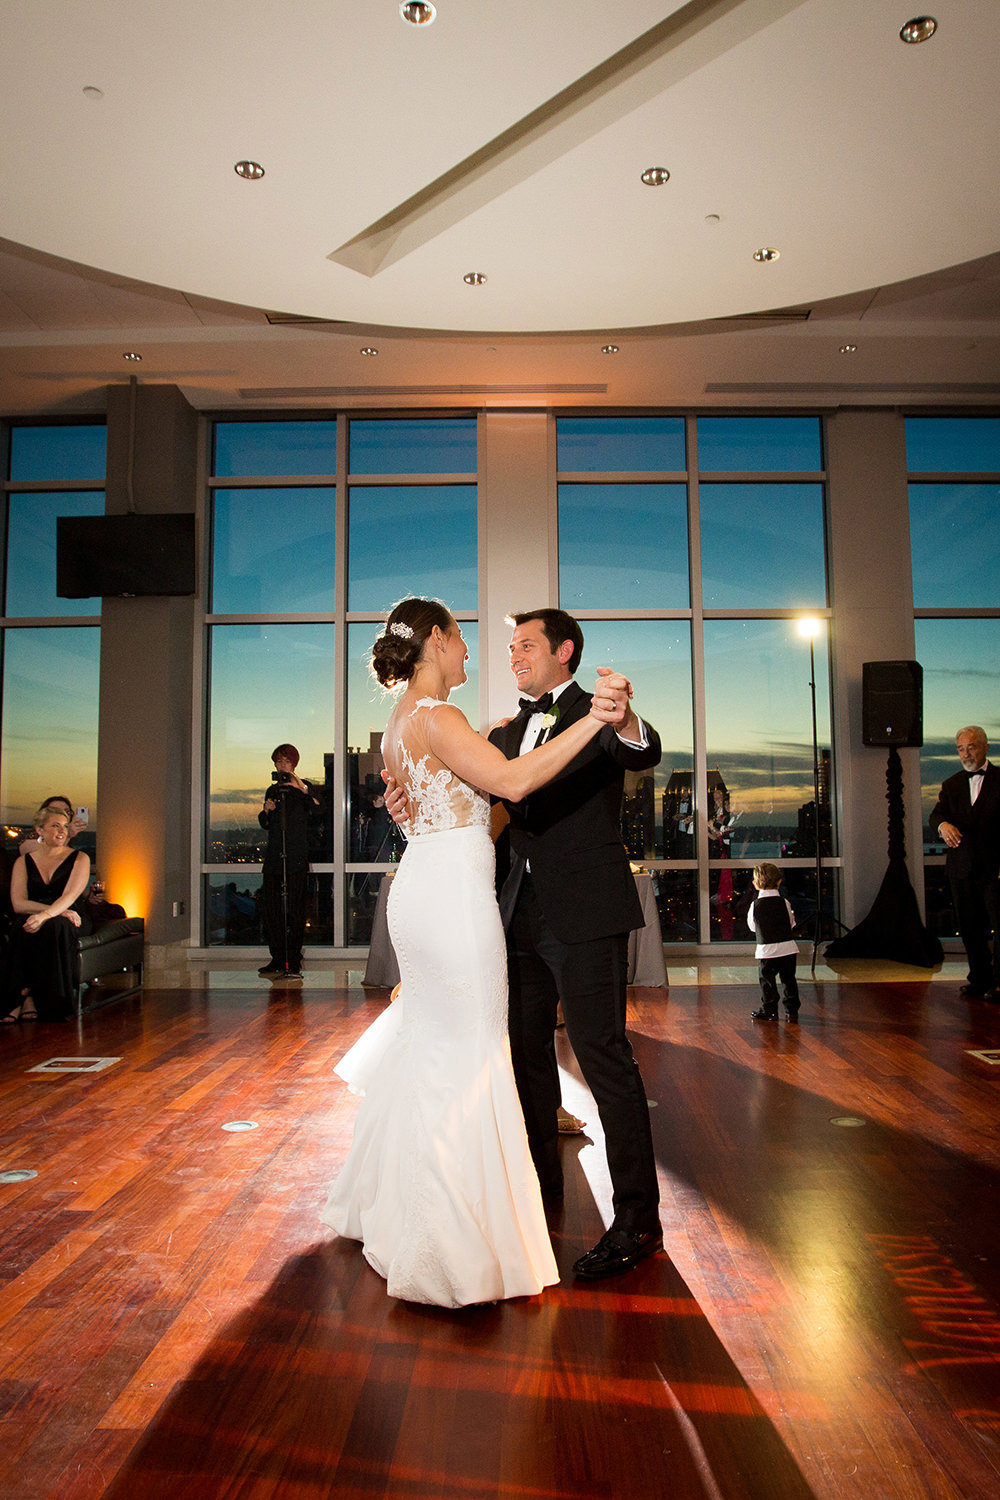 The first dance | Creative wedding photography reception lighting